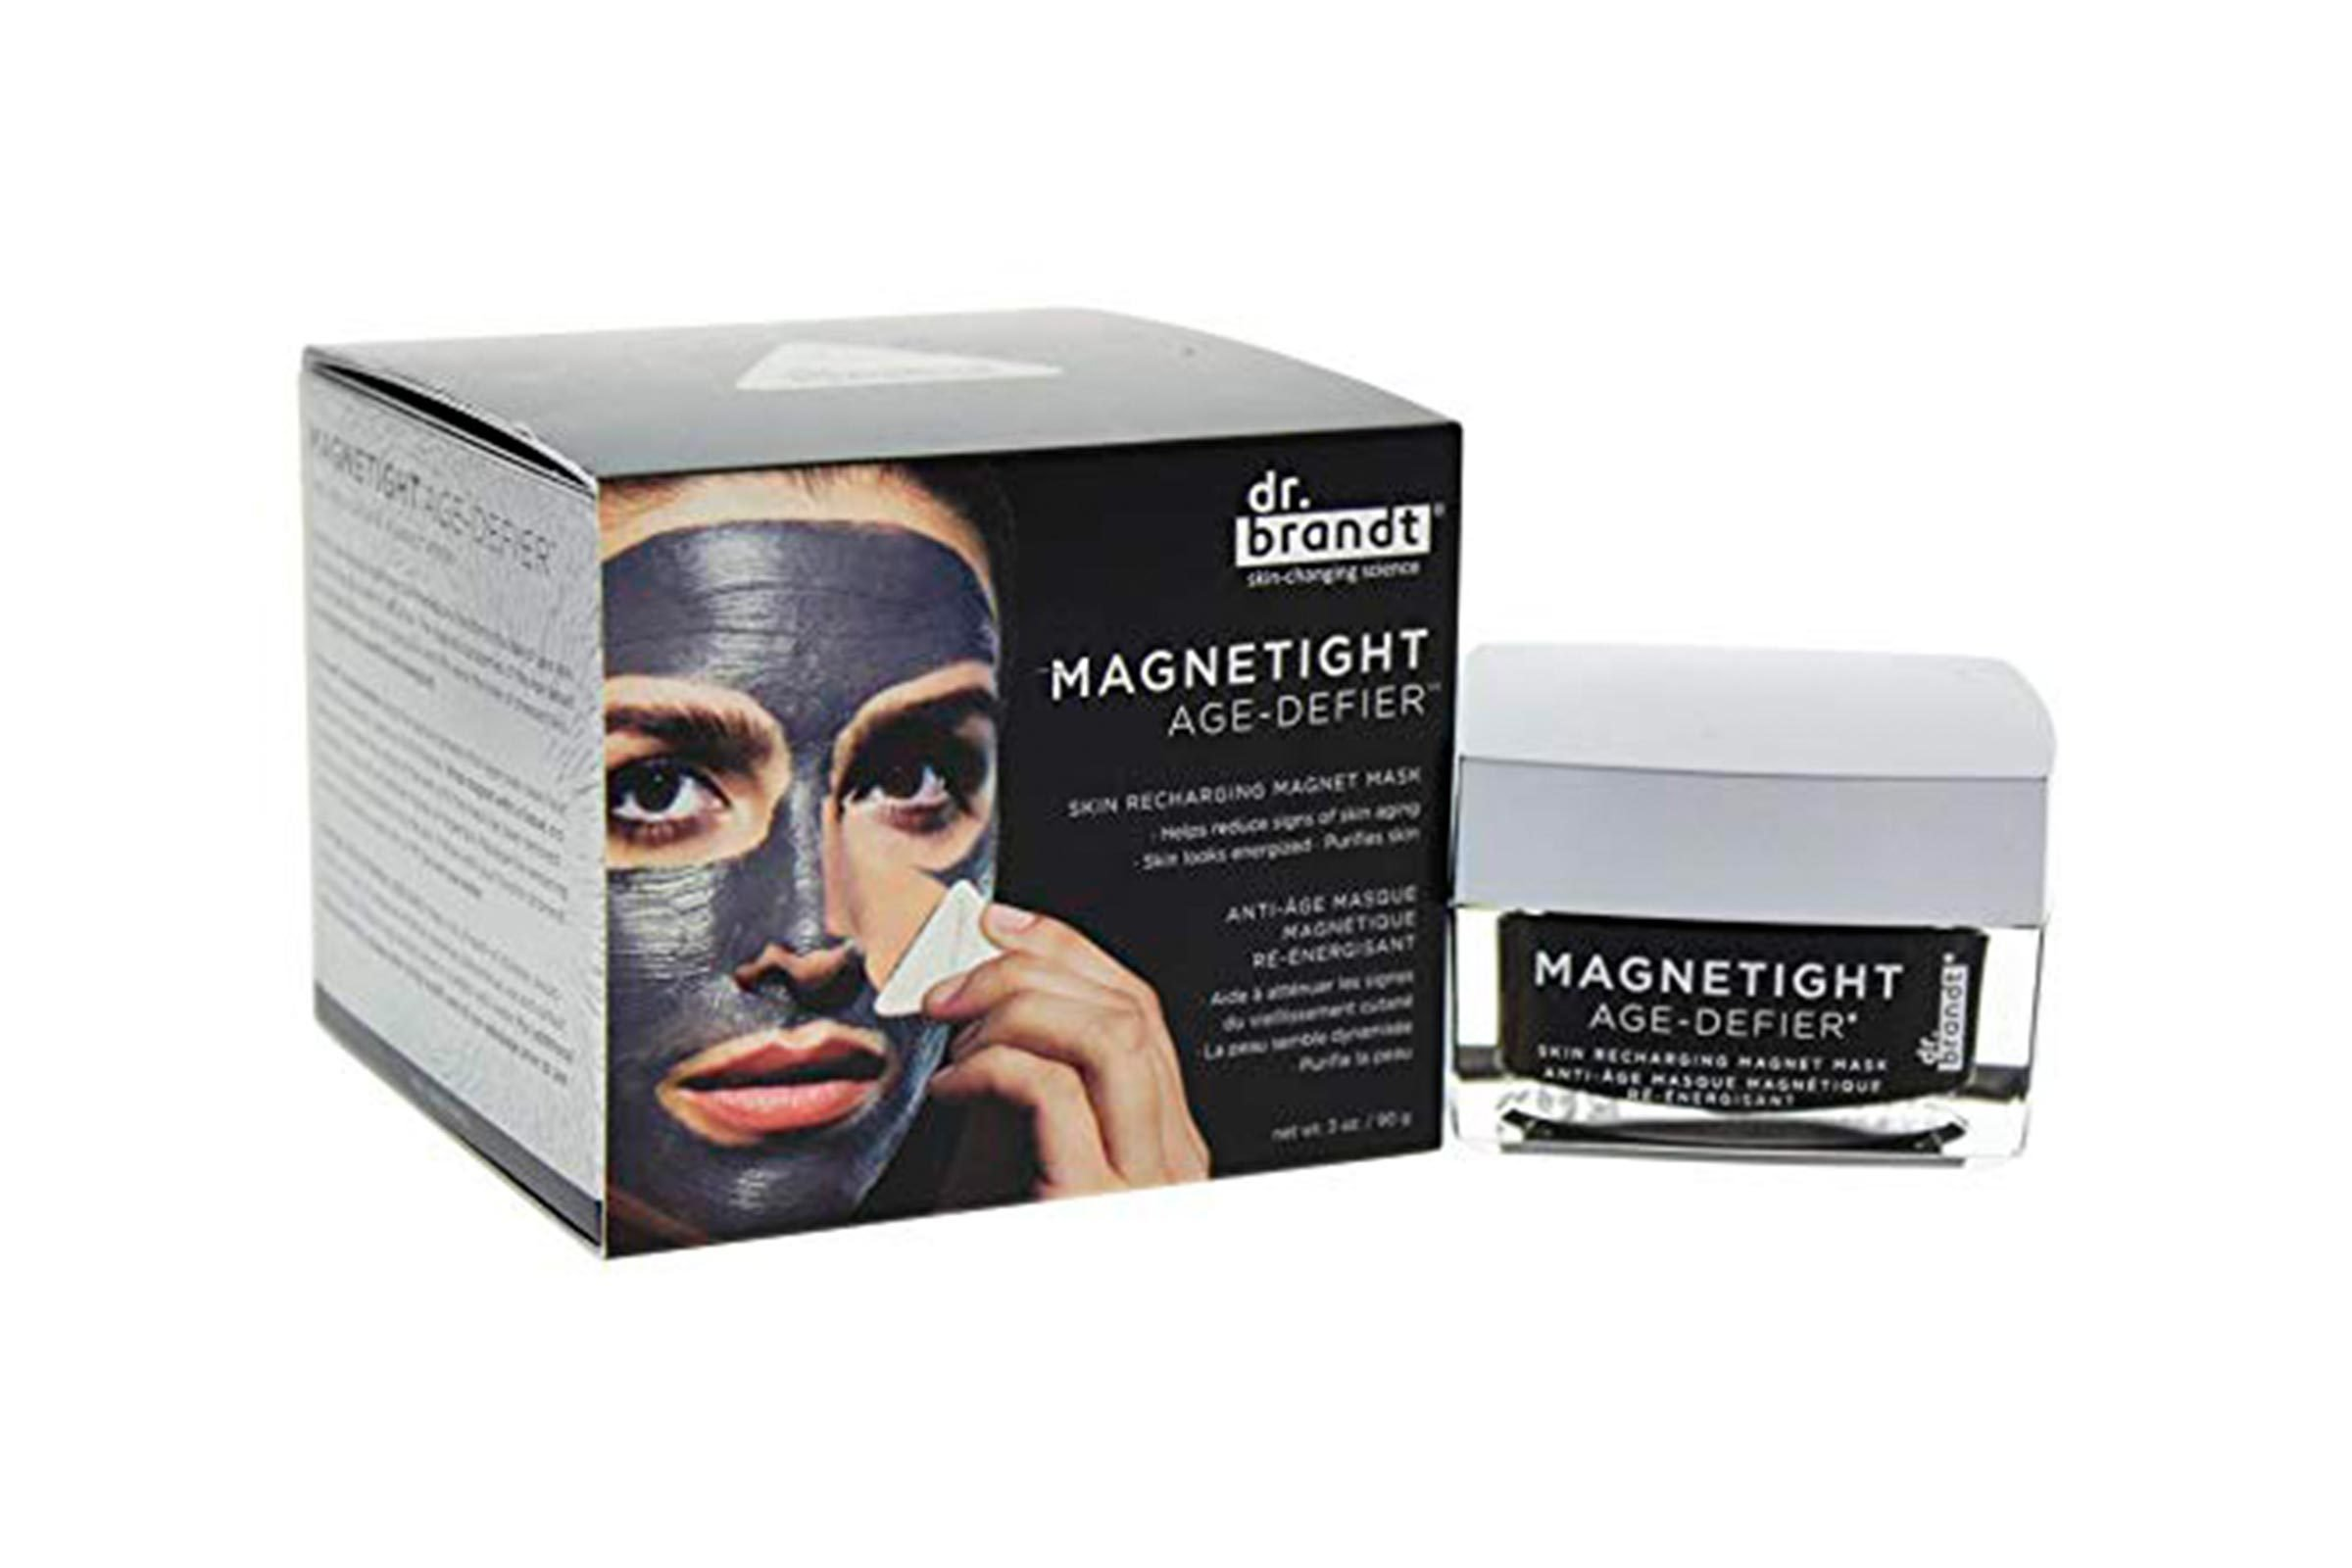 Magnetight face mask